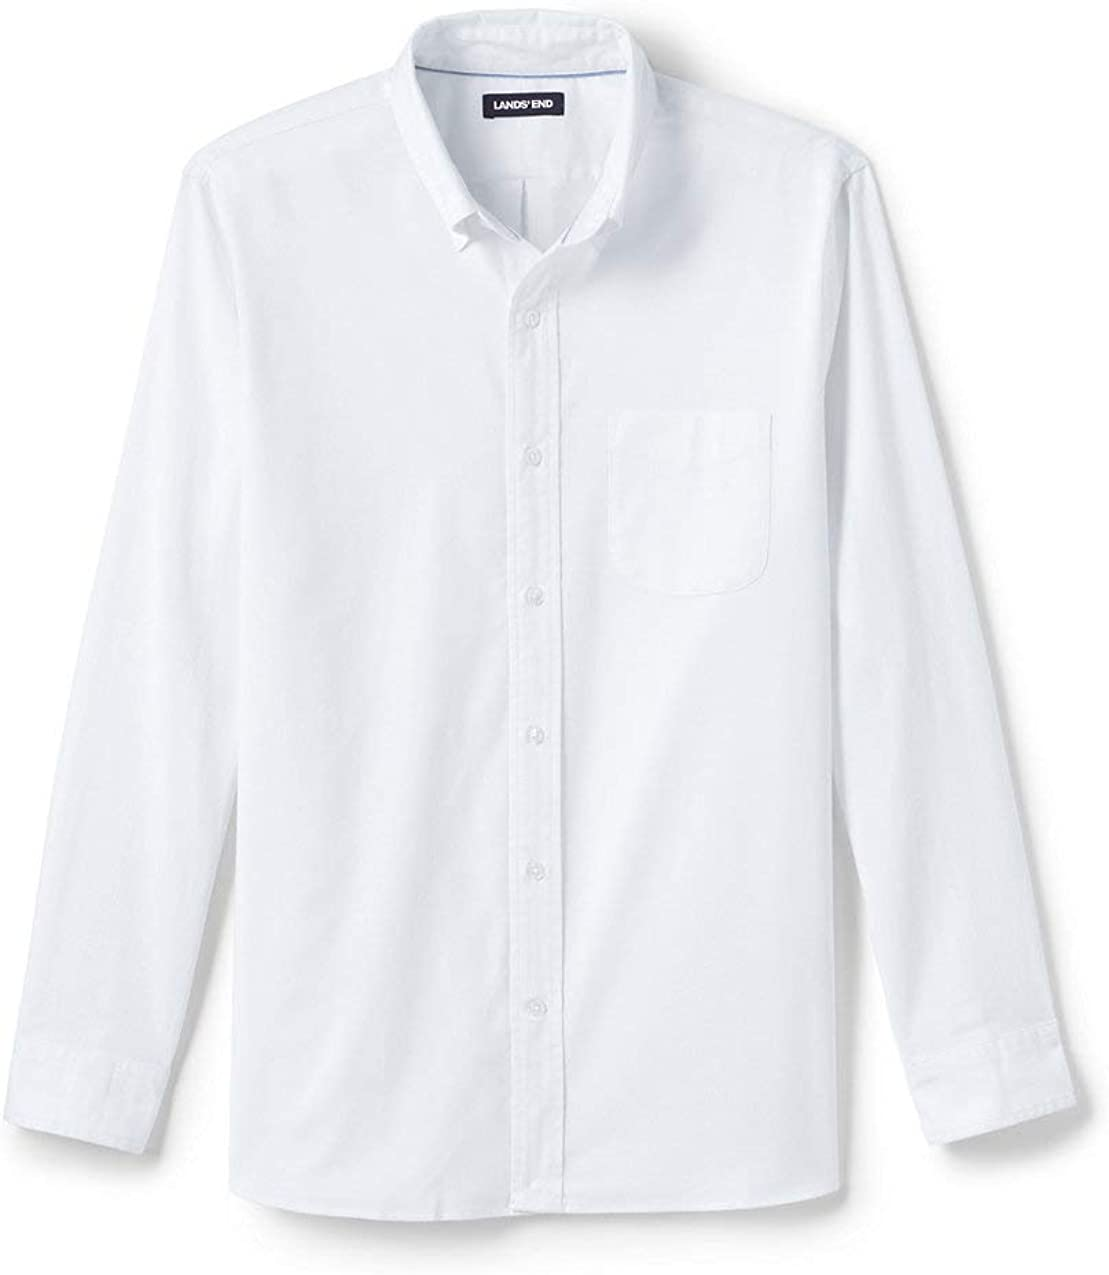 Lands' End Men's Tall Credence Traditional Limited price Rigger Comfort Fit Sail First